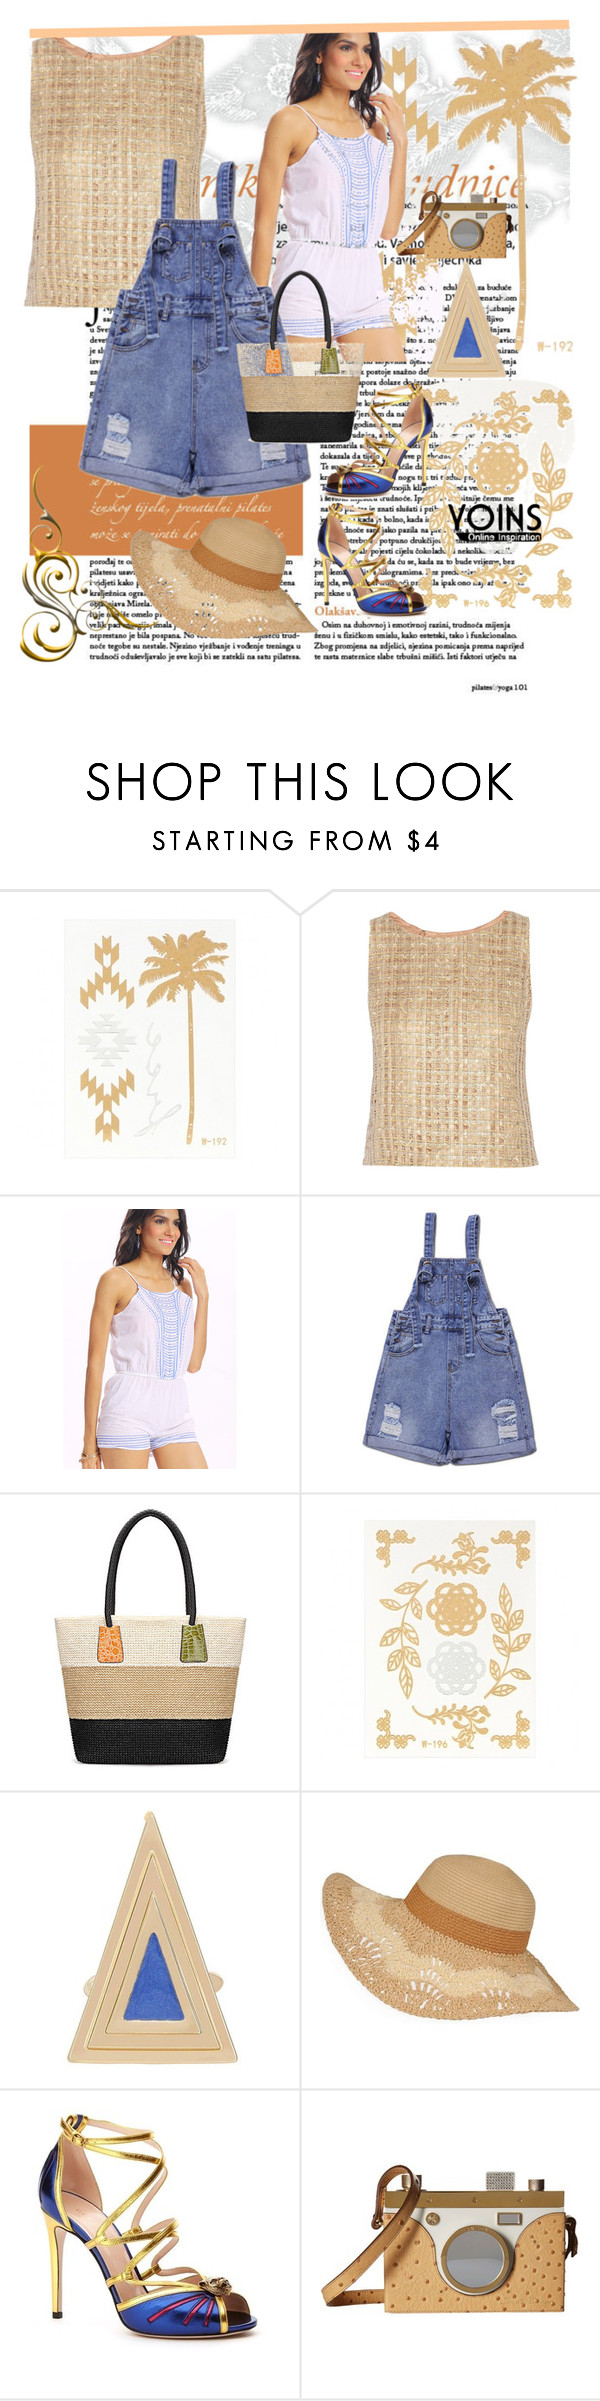 """""""Yoins"""" by vaslida ❤ liked on Polyvore featuring Oscar de la Renta, Gucci, Charlotte Olympia and yoins"""